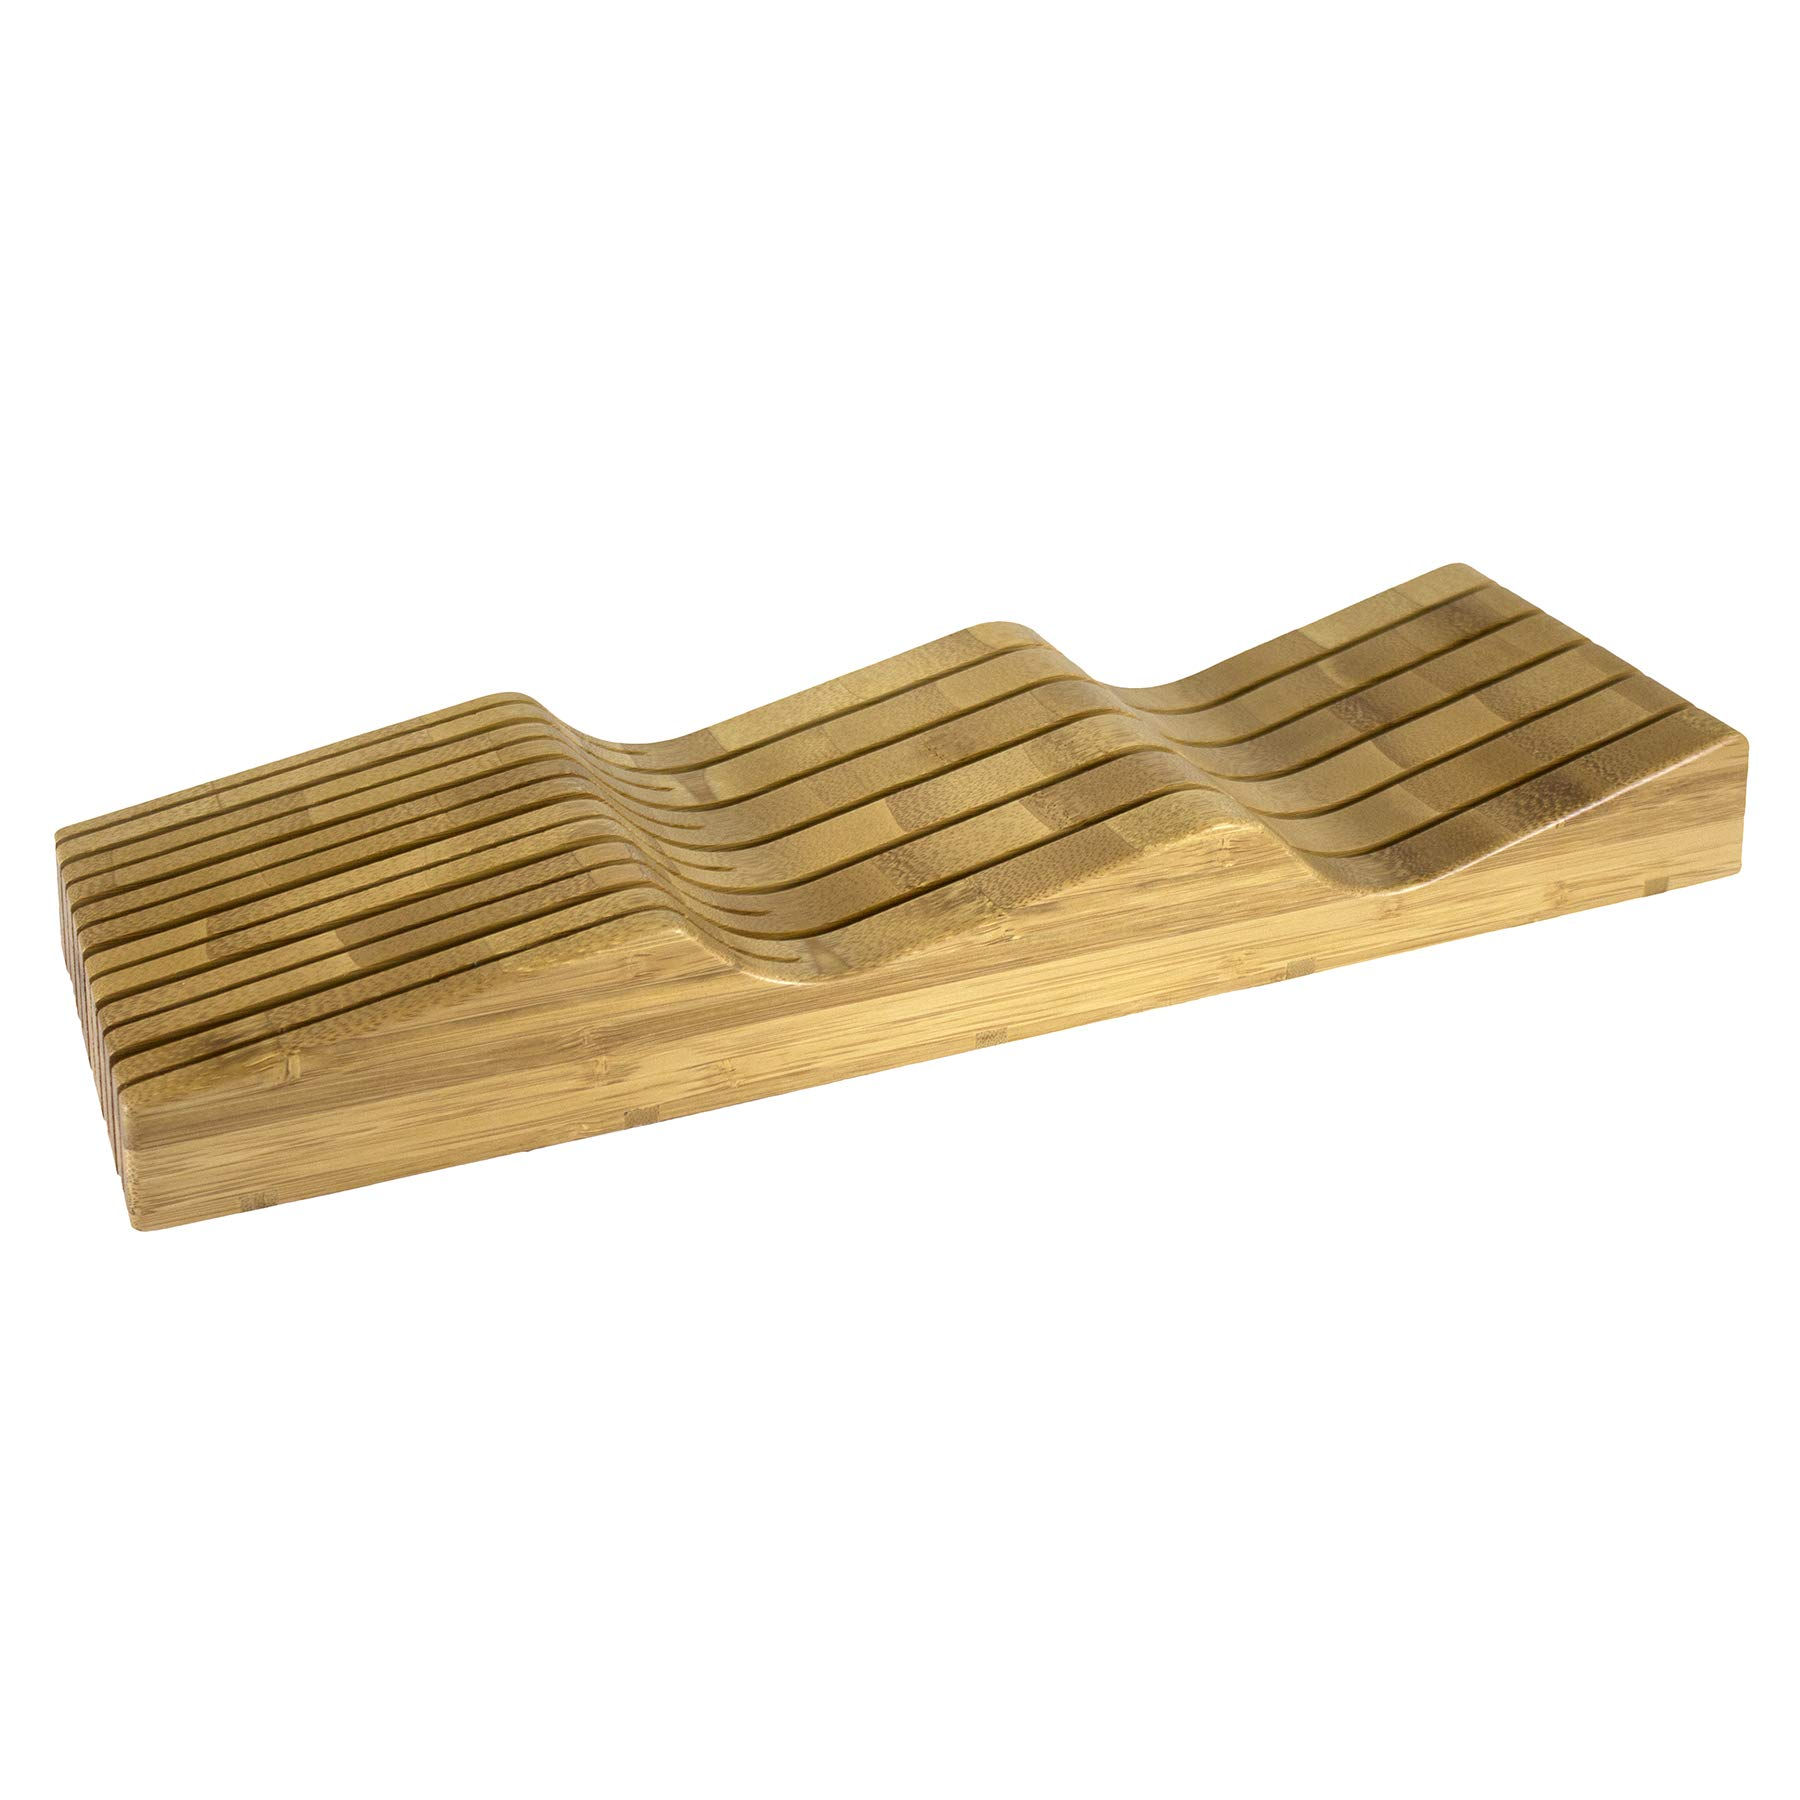 Totally Bamboo 20-2091 In- Drawer Knife Block, 17'' x 5.25'', Bamboo by Totally Bamboo